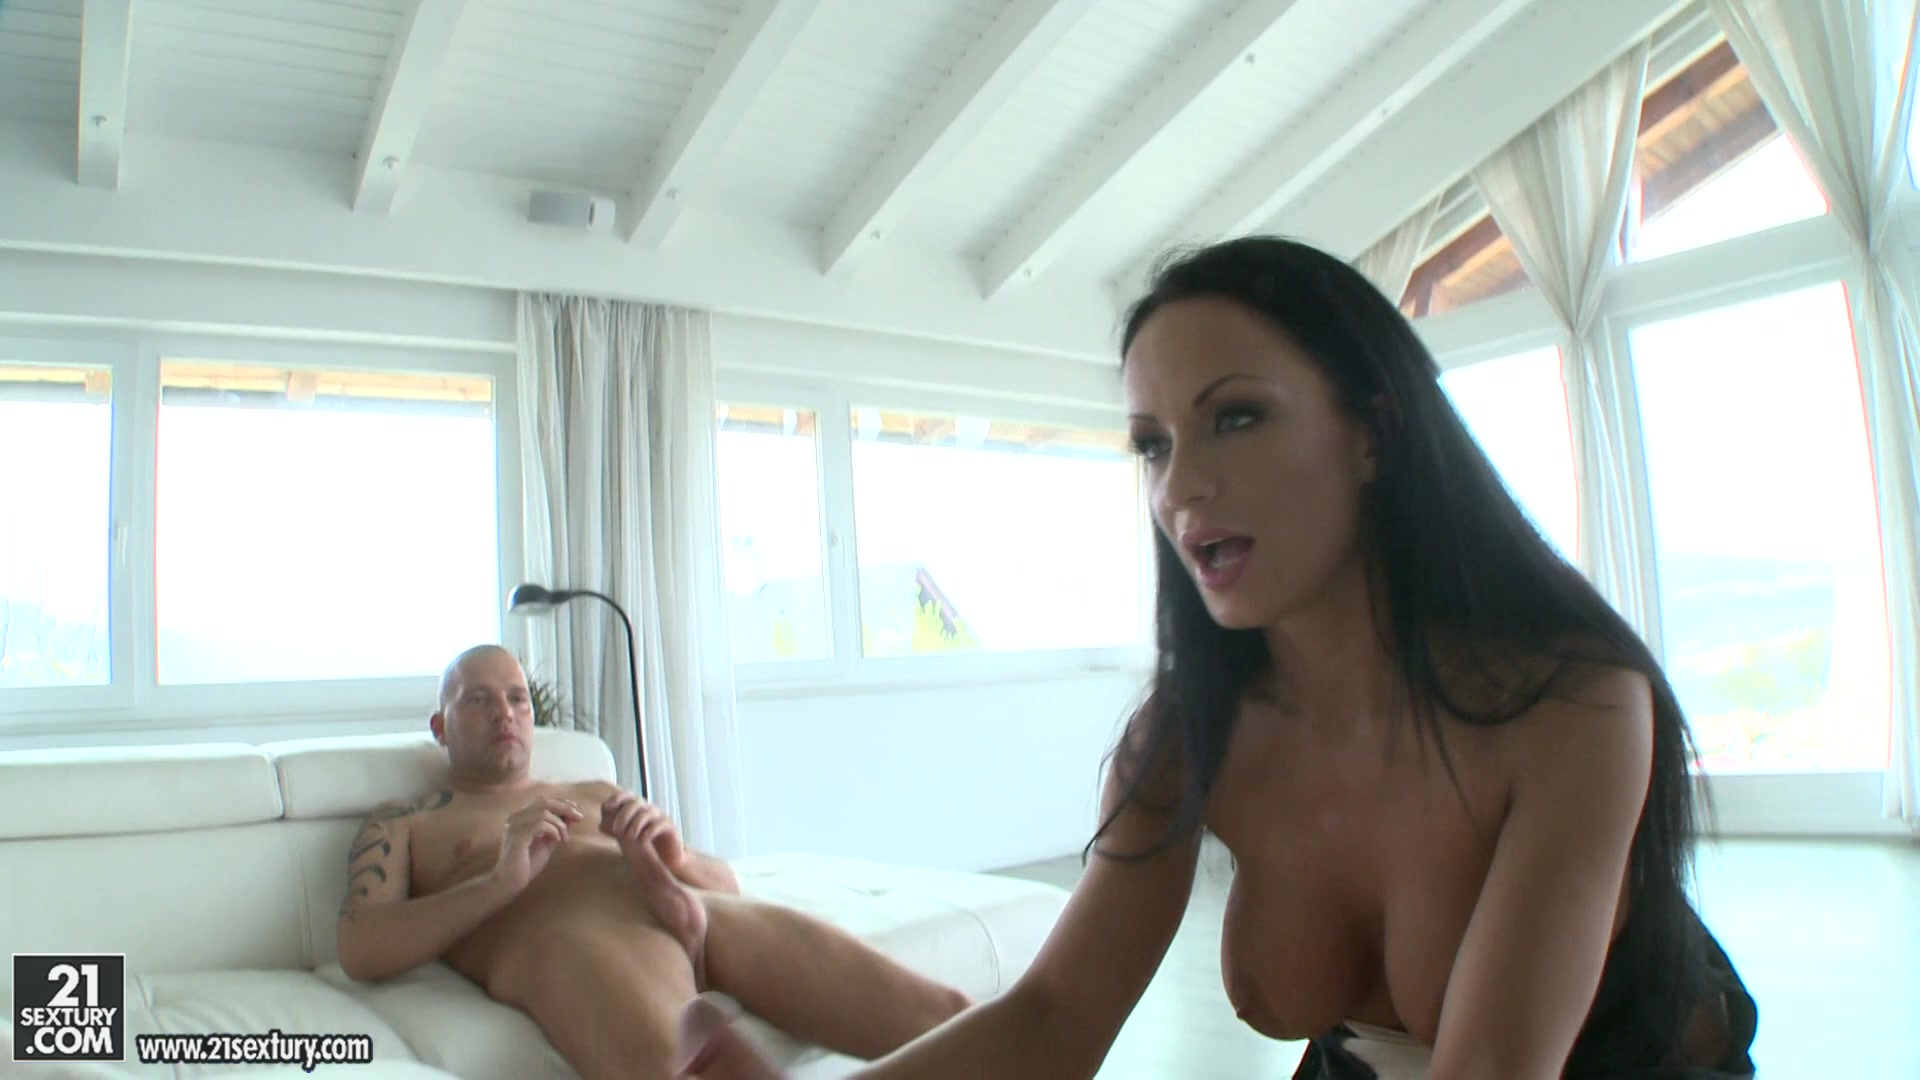 She begs him to fuck her